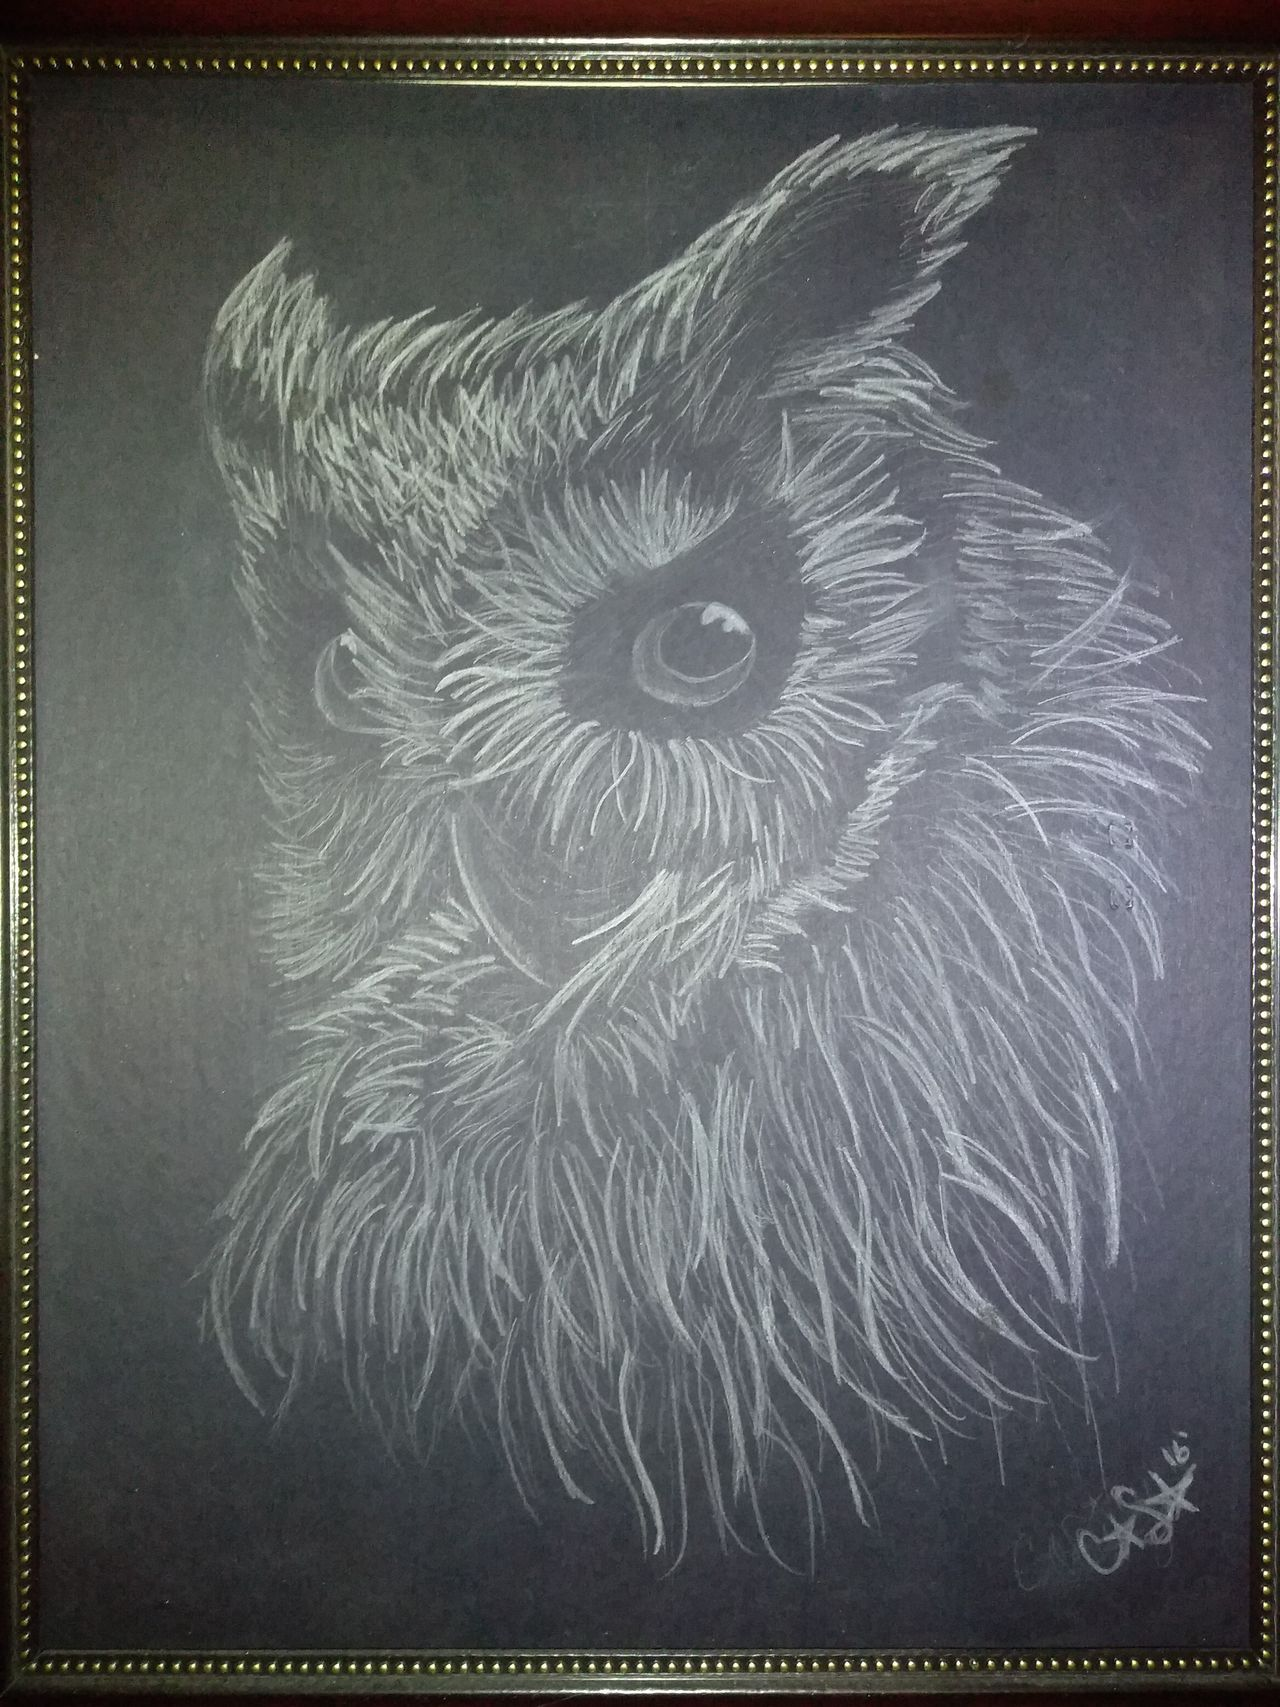 Owl Art Owls Drawing Art Black Canvas Owl Sketch Art Therapy I Love Drawing Creativity No People Close-up Original Artwork Works Of Art Owl Drawing Birds Of EyeEm  White Pencils Art Is Life Creative Power Creativity Has No Limits The Arts Crowd My Artwork Never Stop Creating